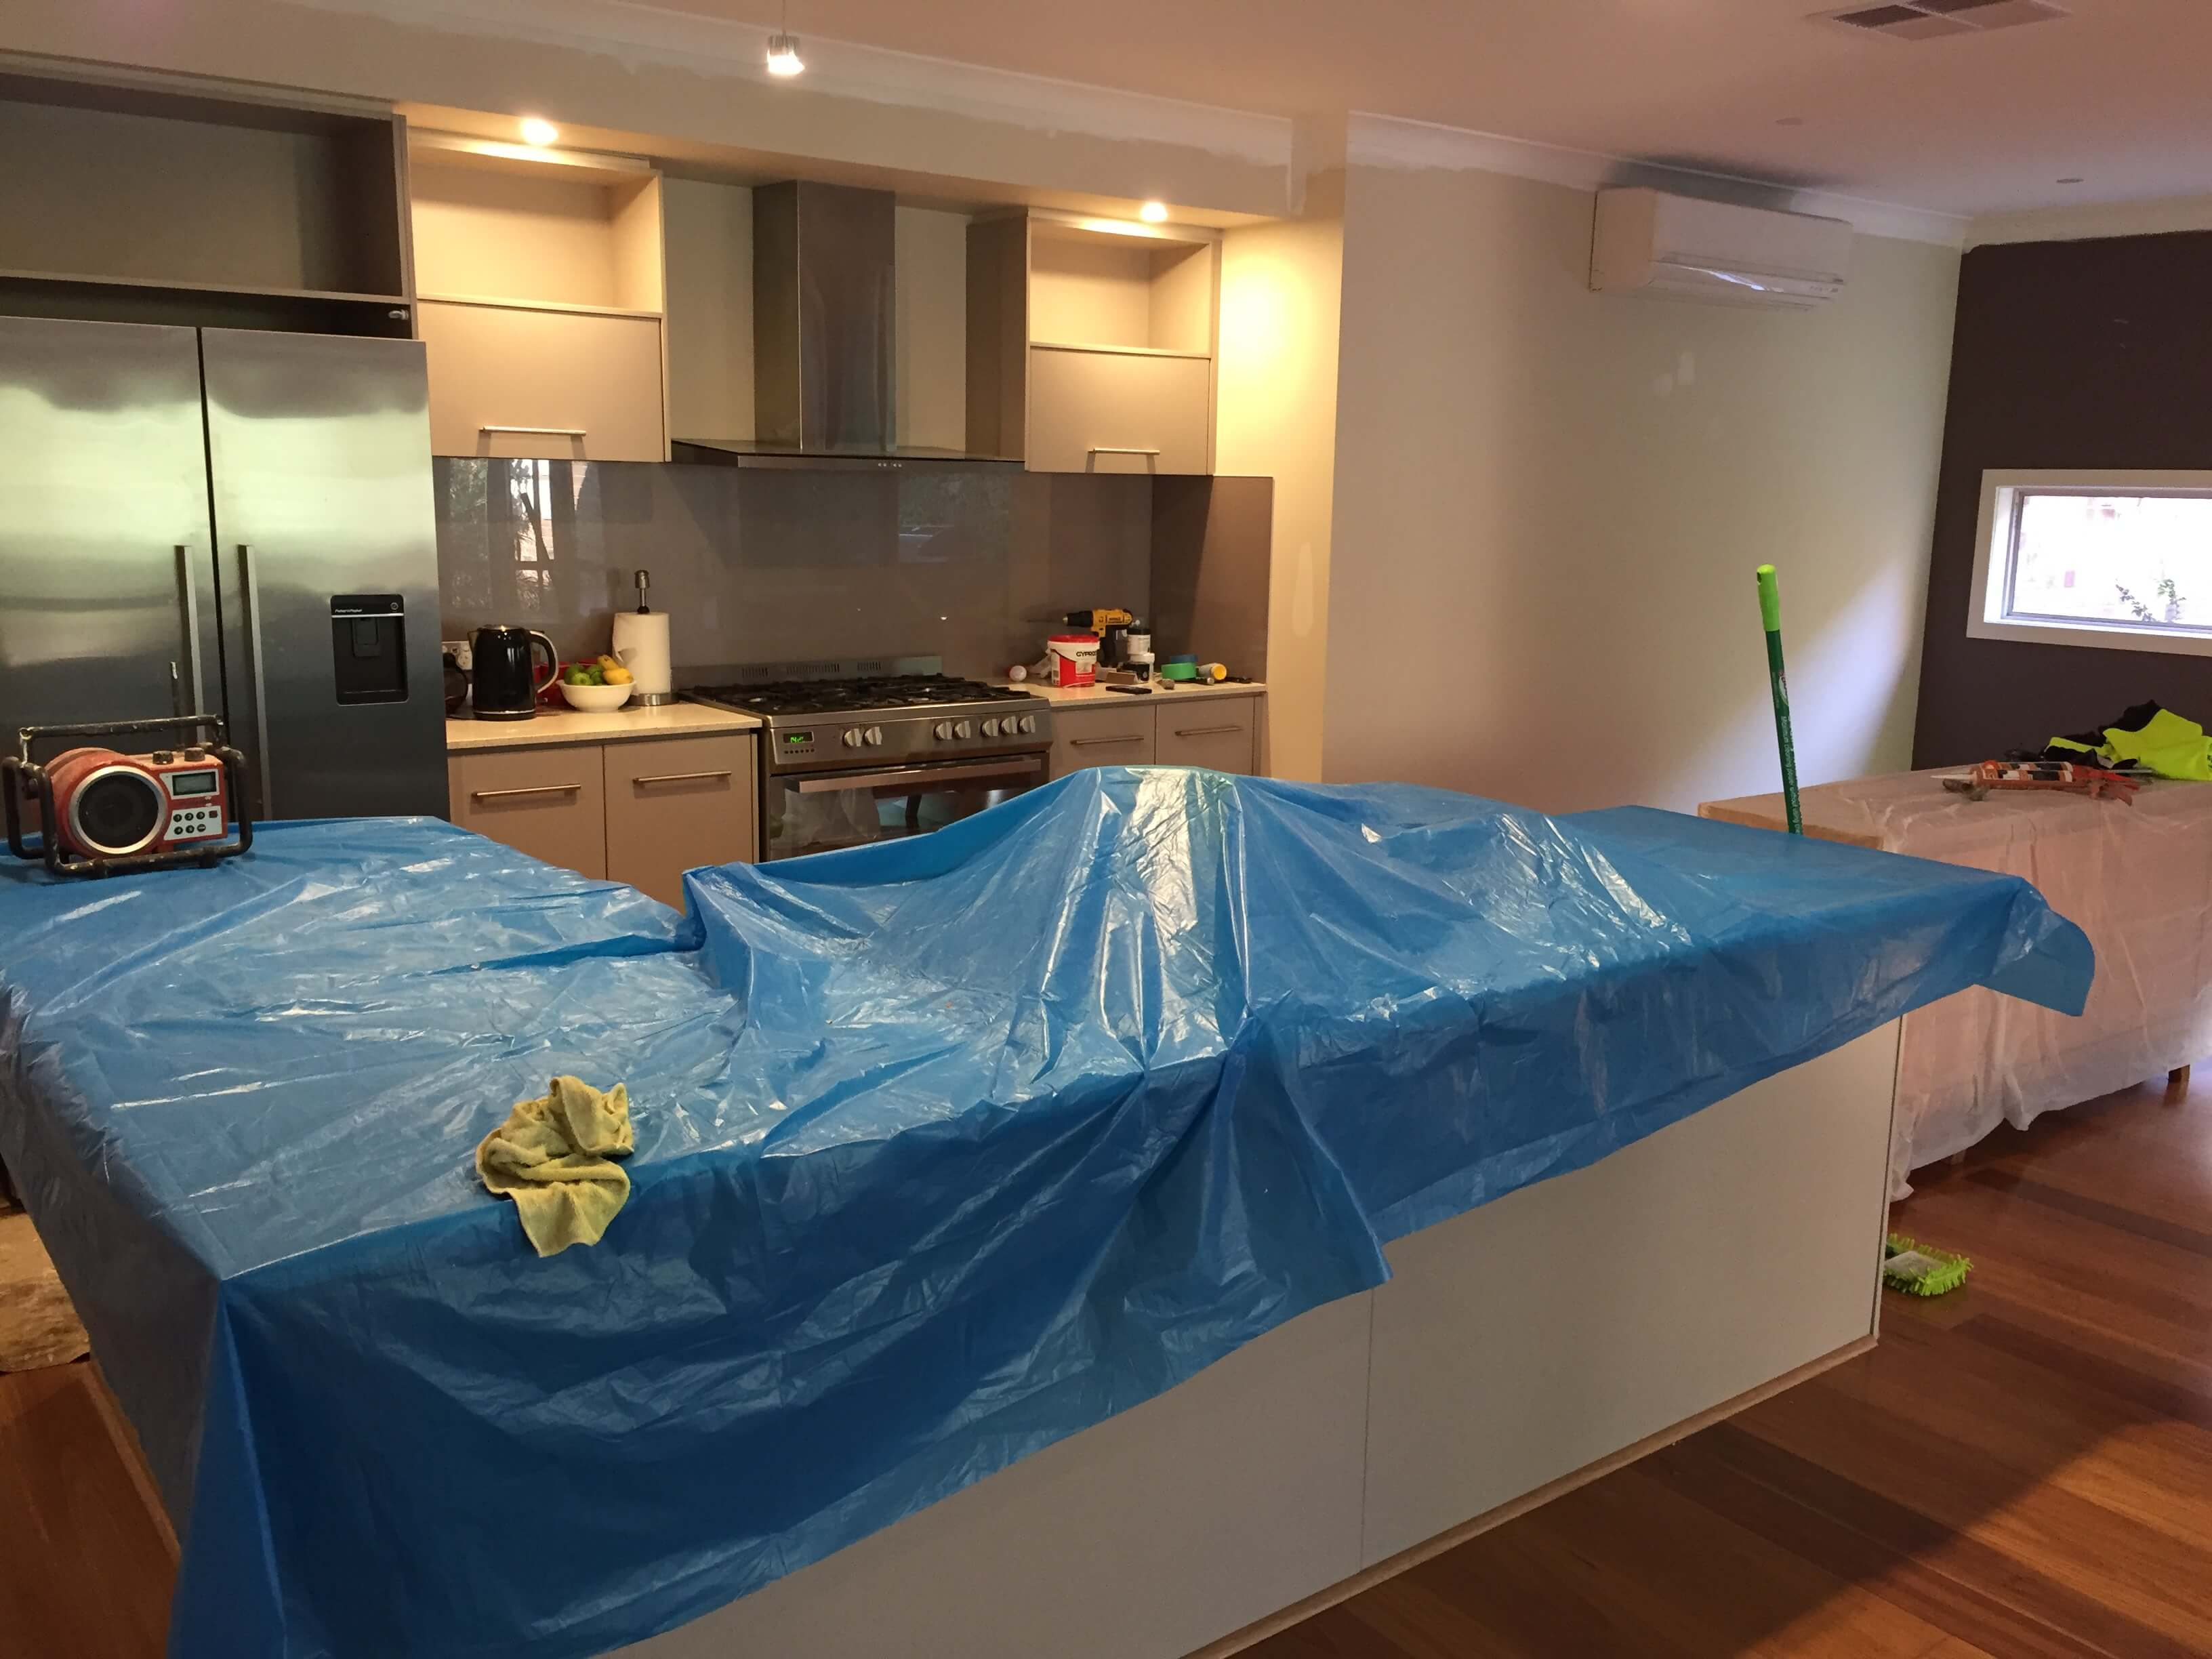 House-Painting-Preperation-C